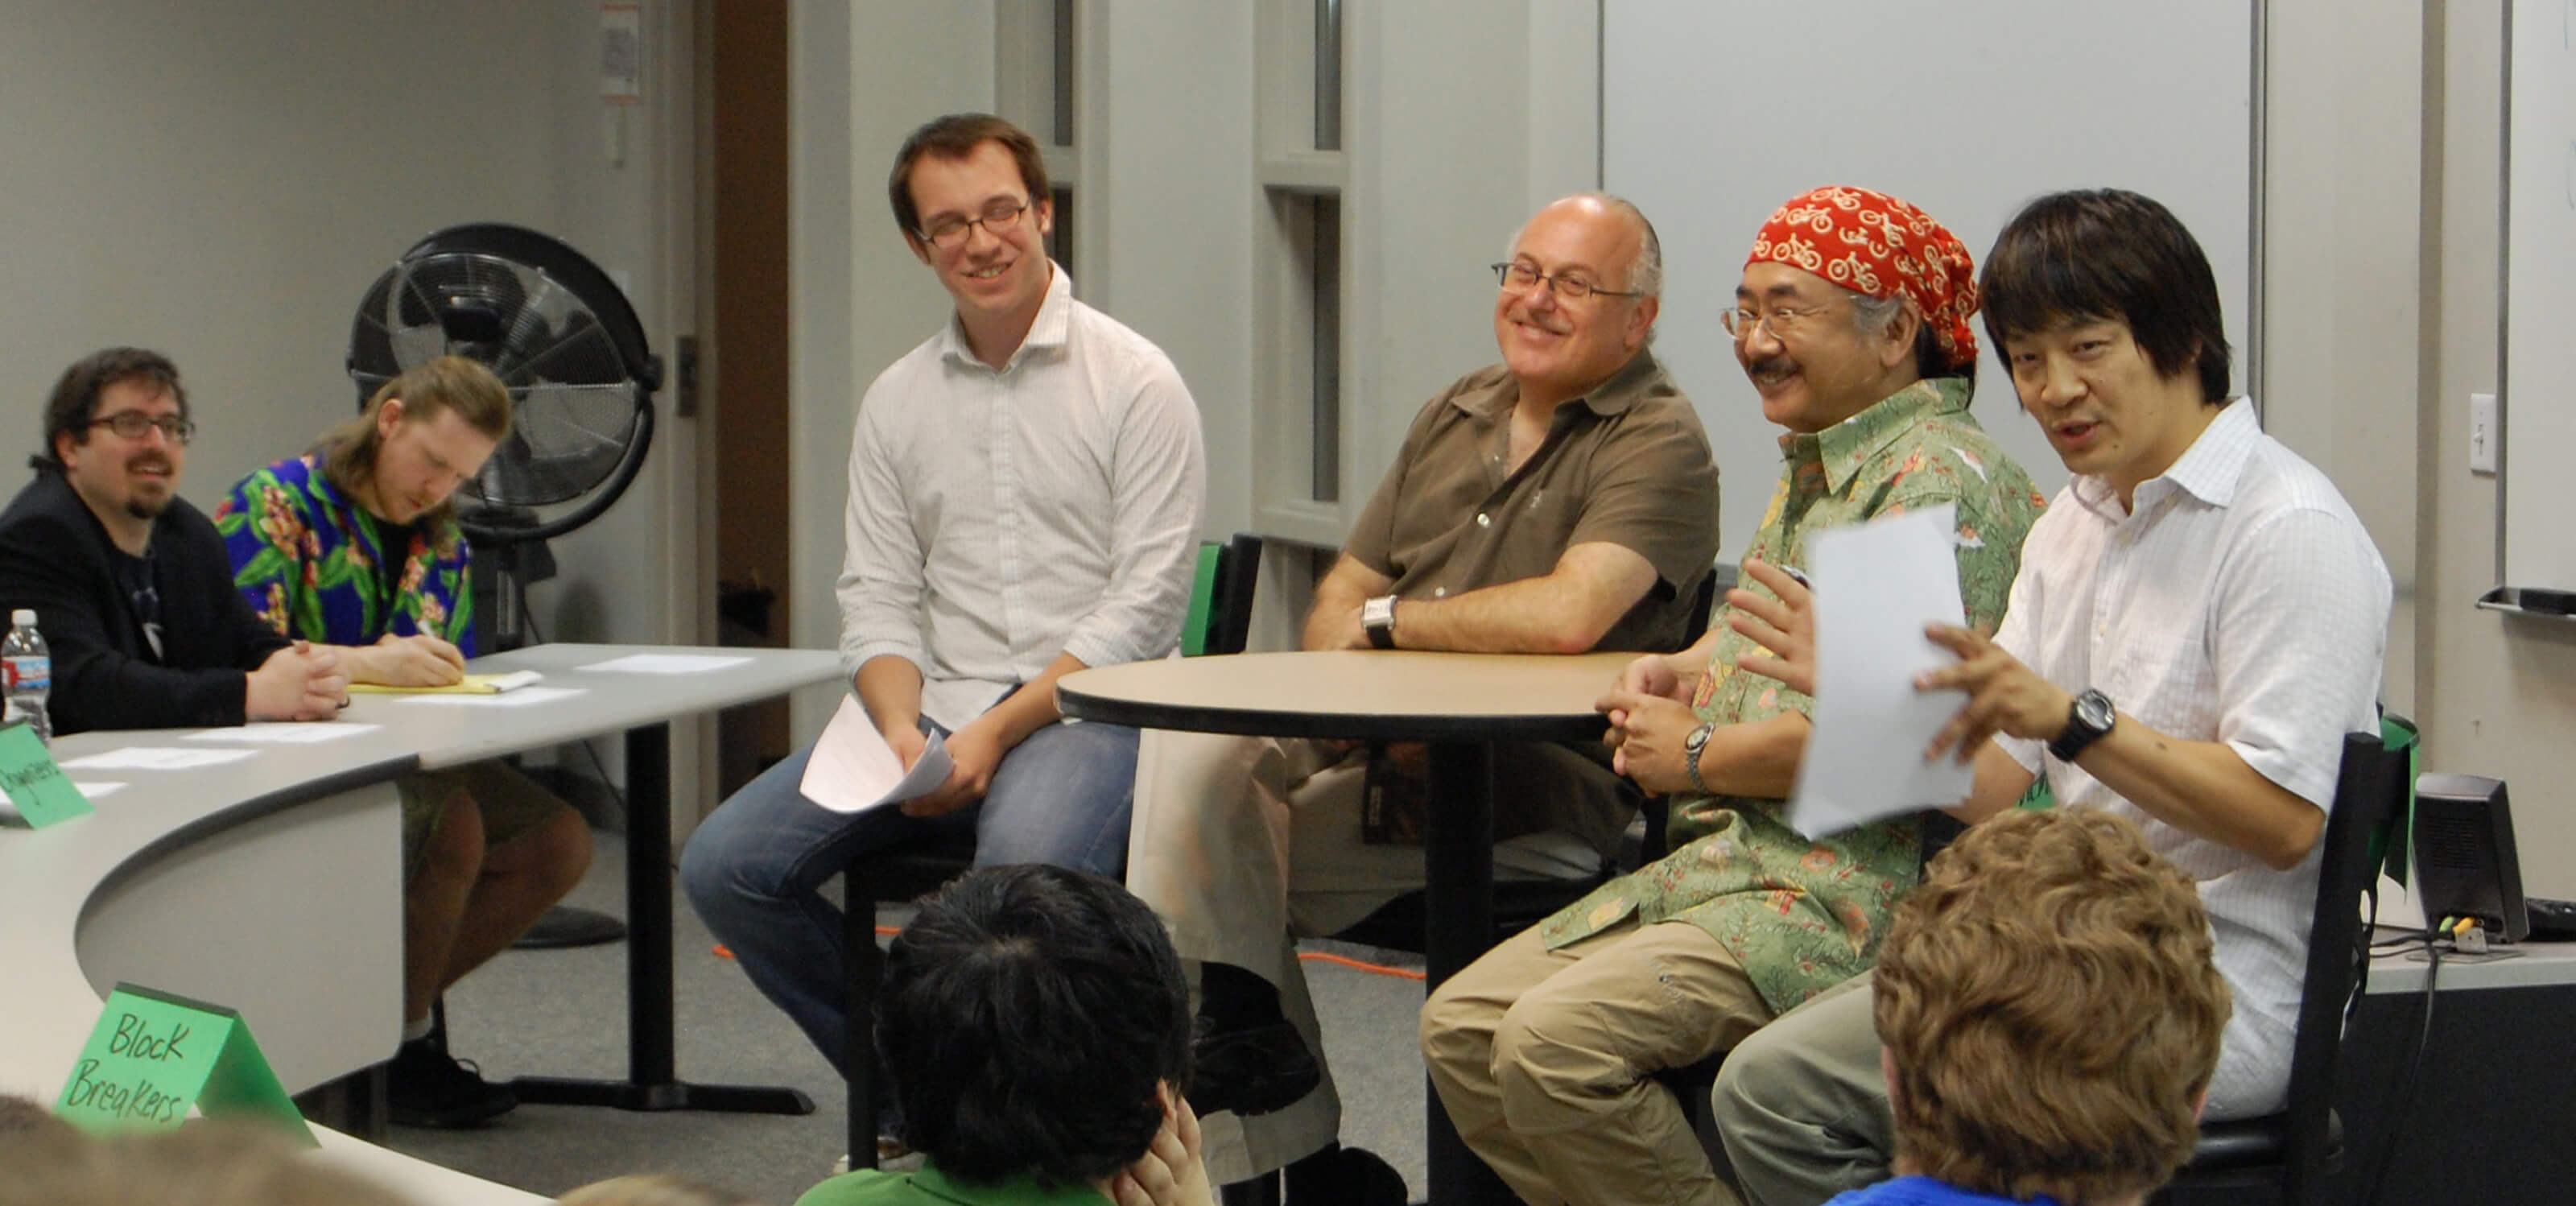 Nobuo Uematsu and Arnie Roth speak to students in a DigiPen classroom